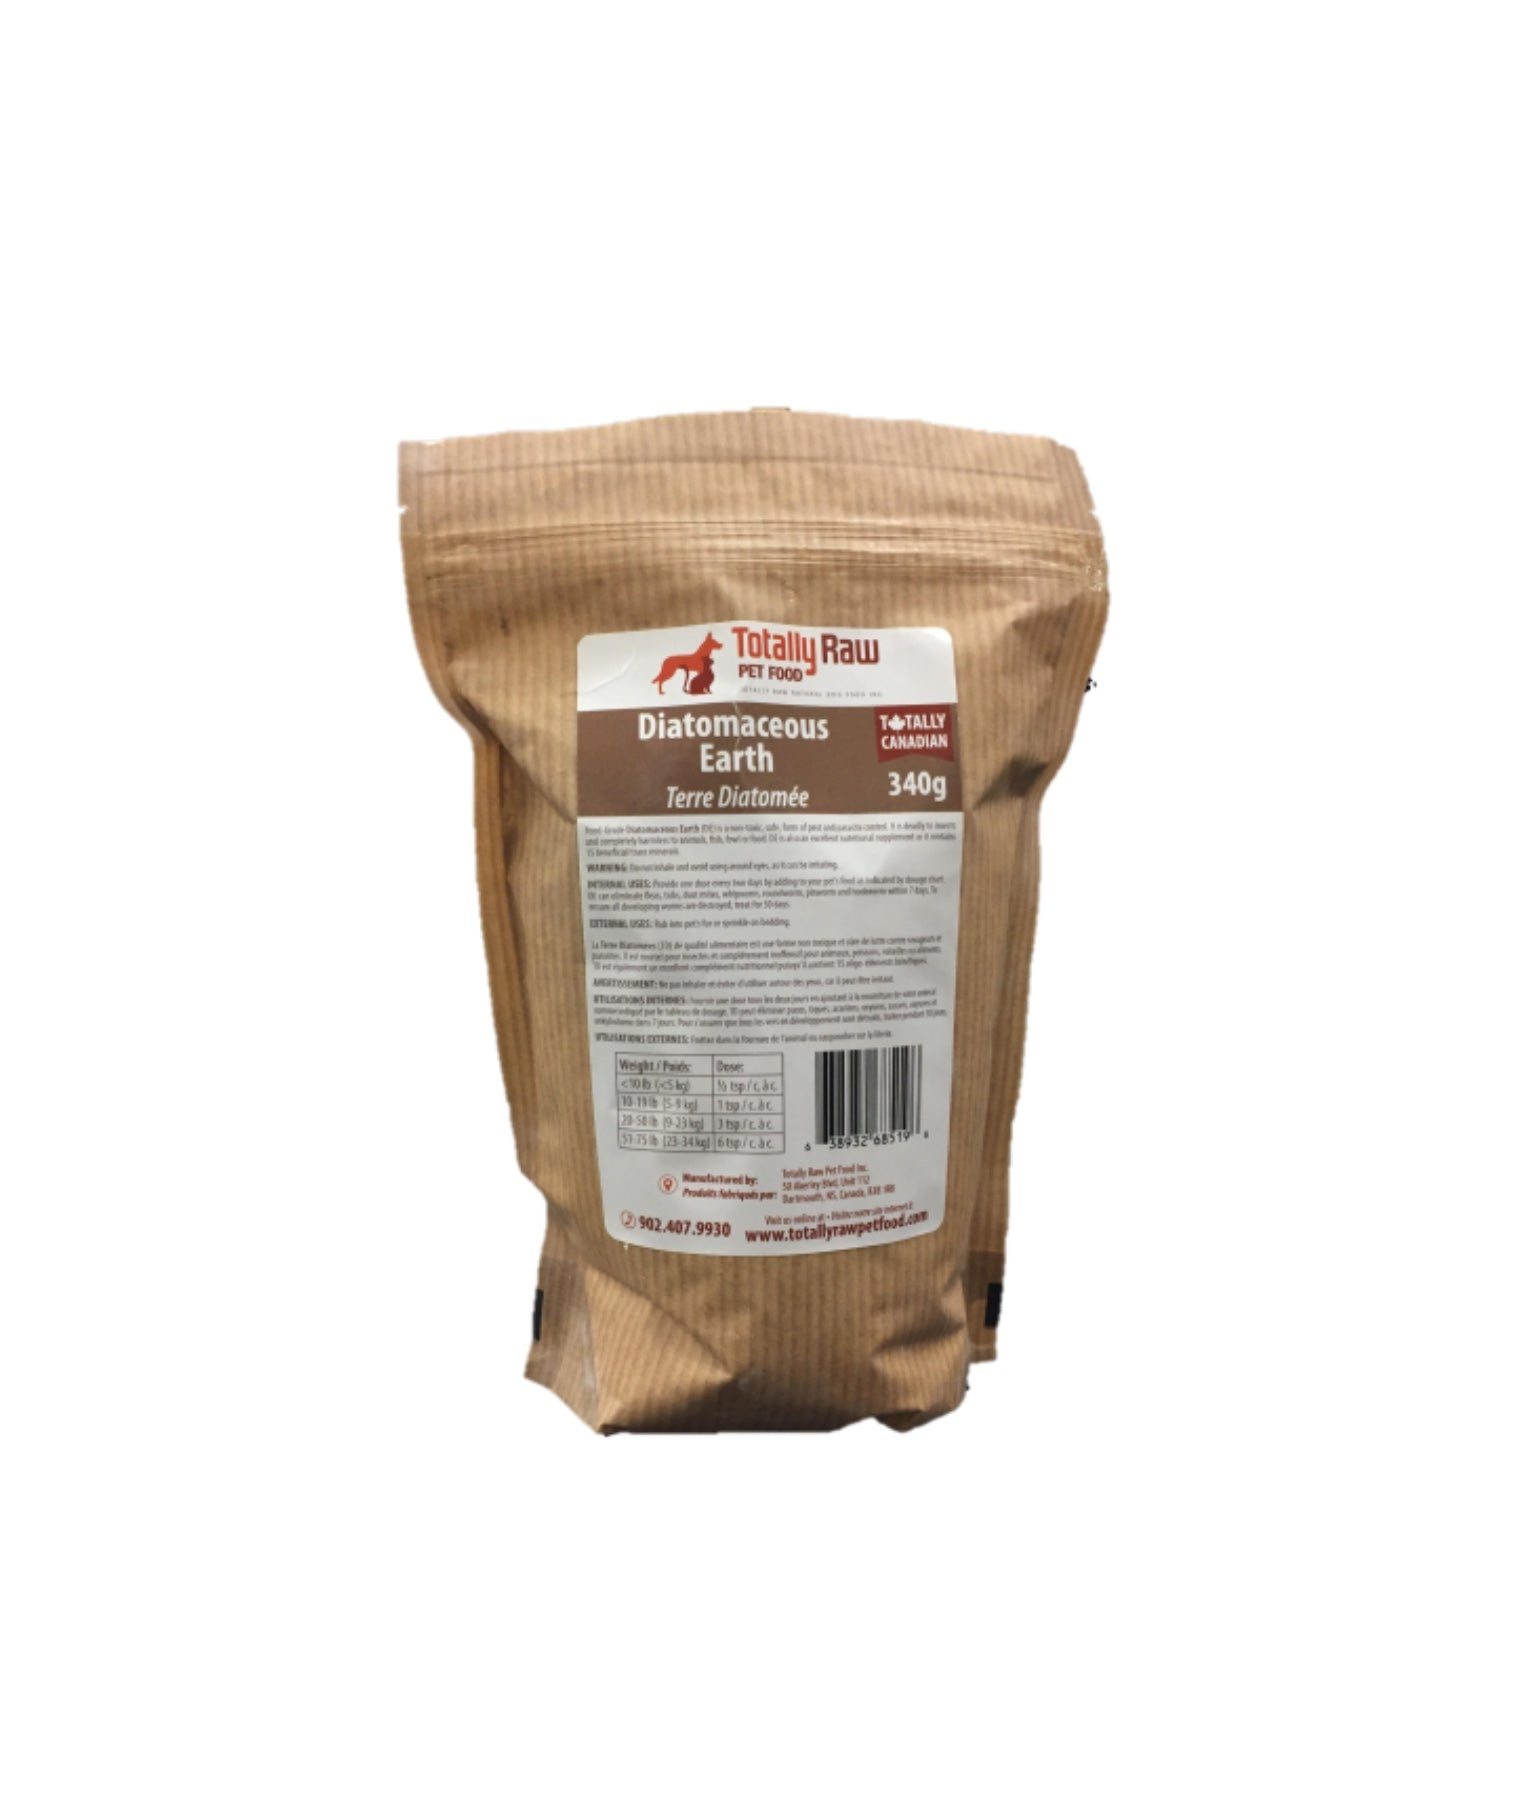 Totally Raw - Diatomaceous Earth - 340g